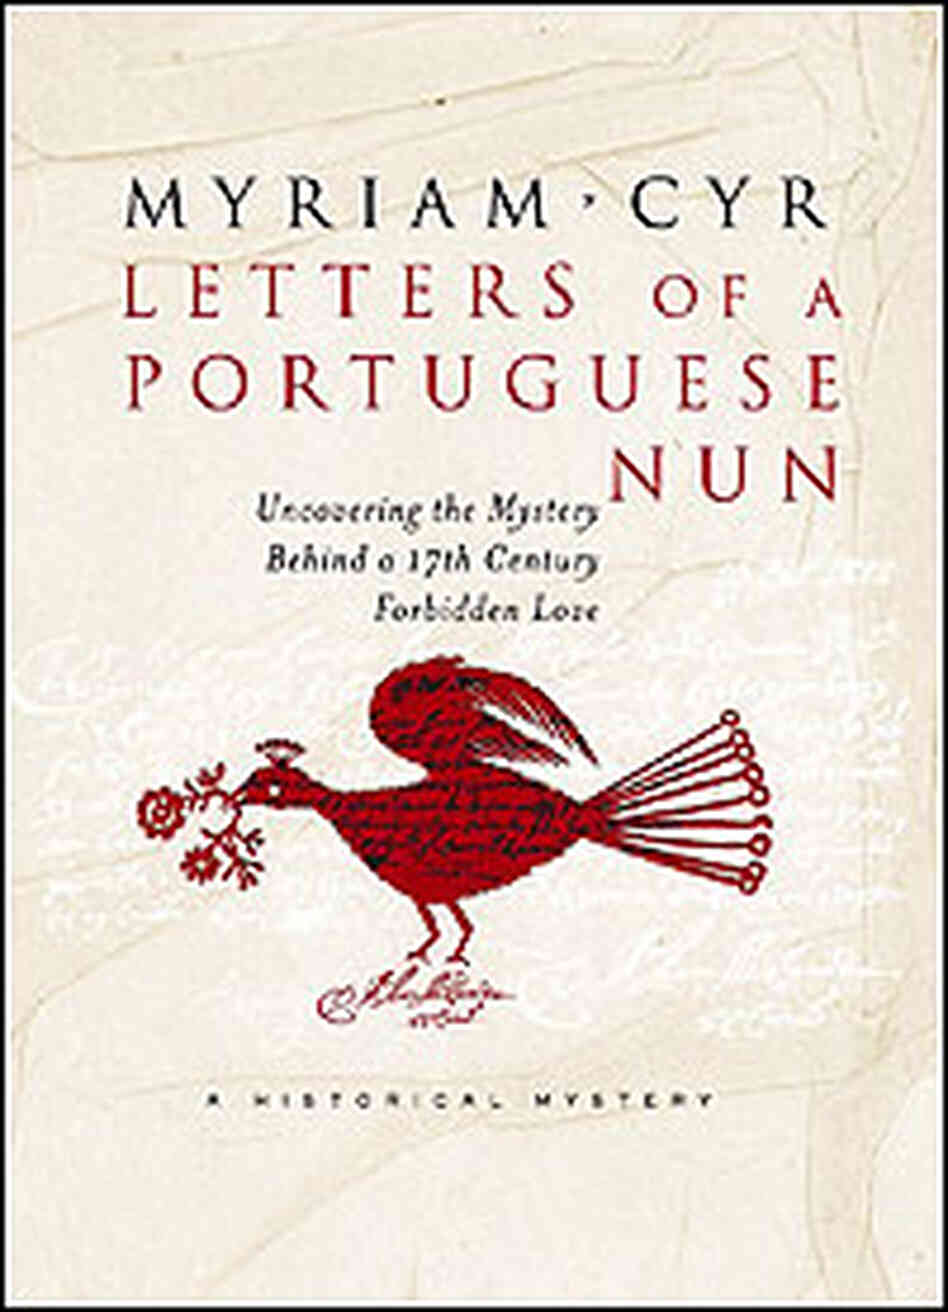 The cover of Myriam Cyr's book.